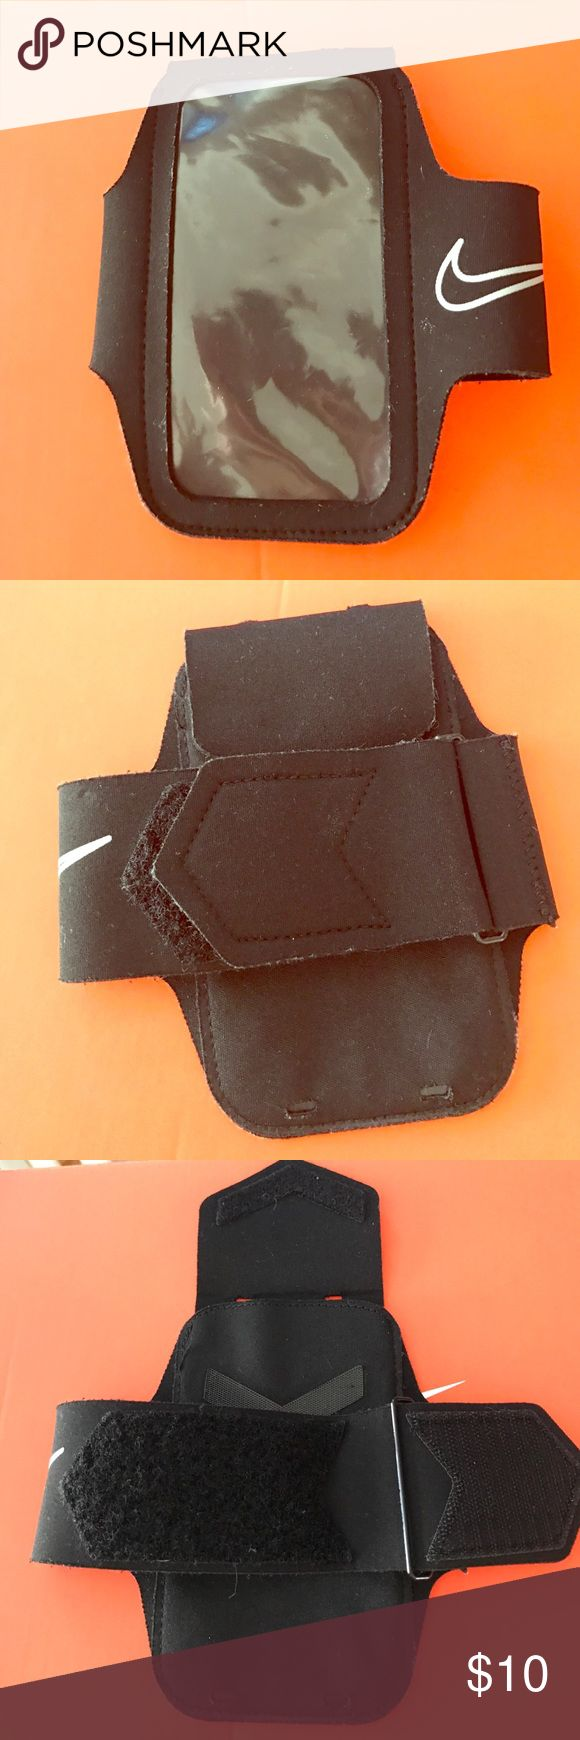 Nike iPhone 6 armband iPhone 6 armband by Nike, Velcro closures Nike Accessories Phone Cases